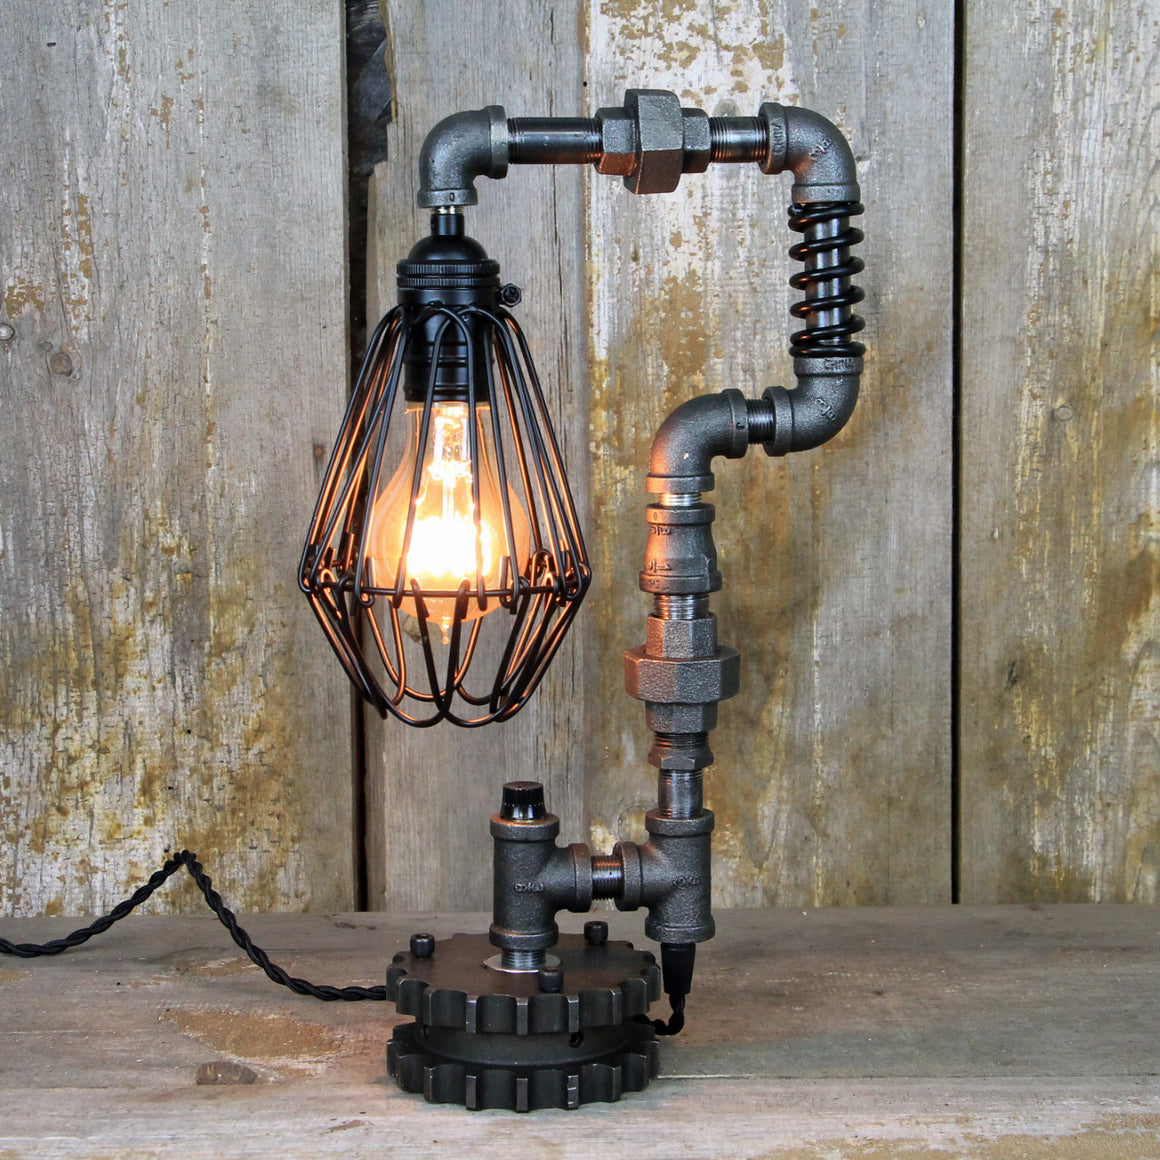 Industrial Table Lamp - Steampunk Desk Lamp #294 - The Lighting Works